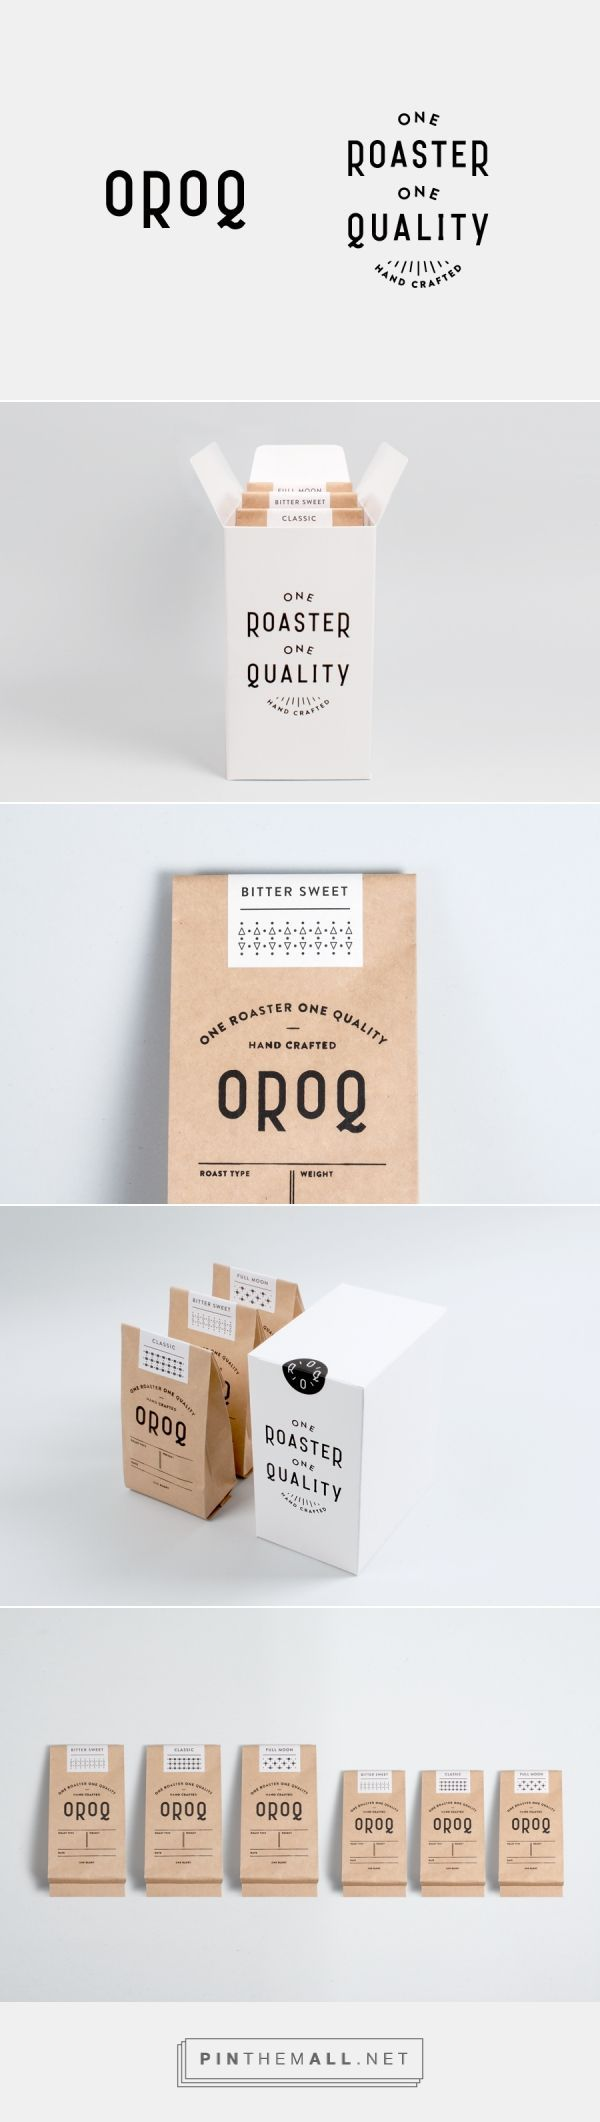 317 best DESIGN images on Pinterest | Packaging design, Advertising ...